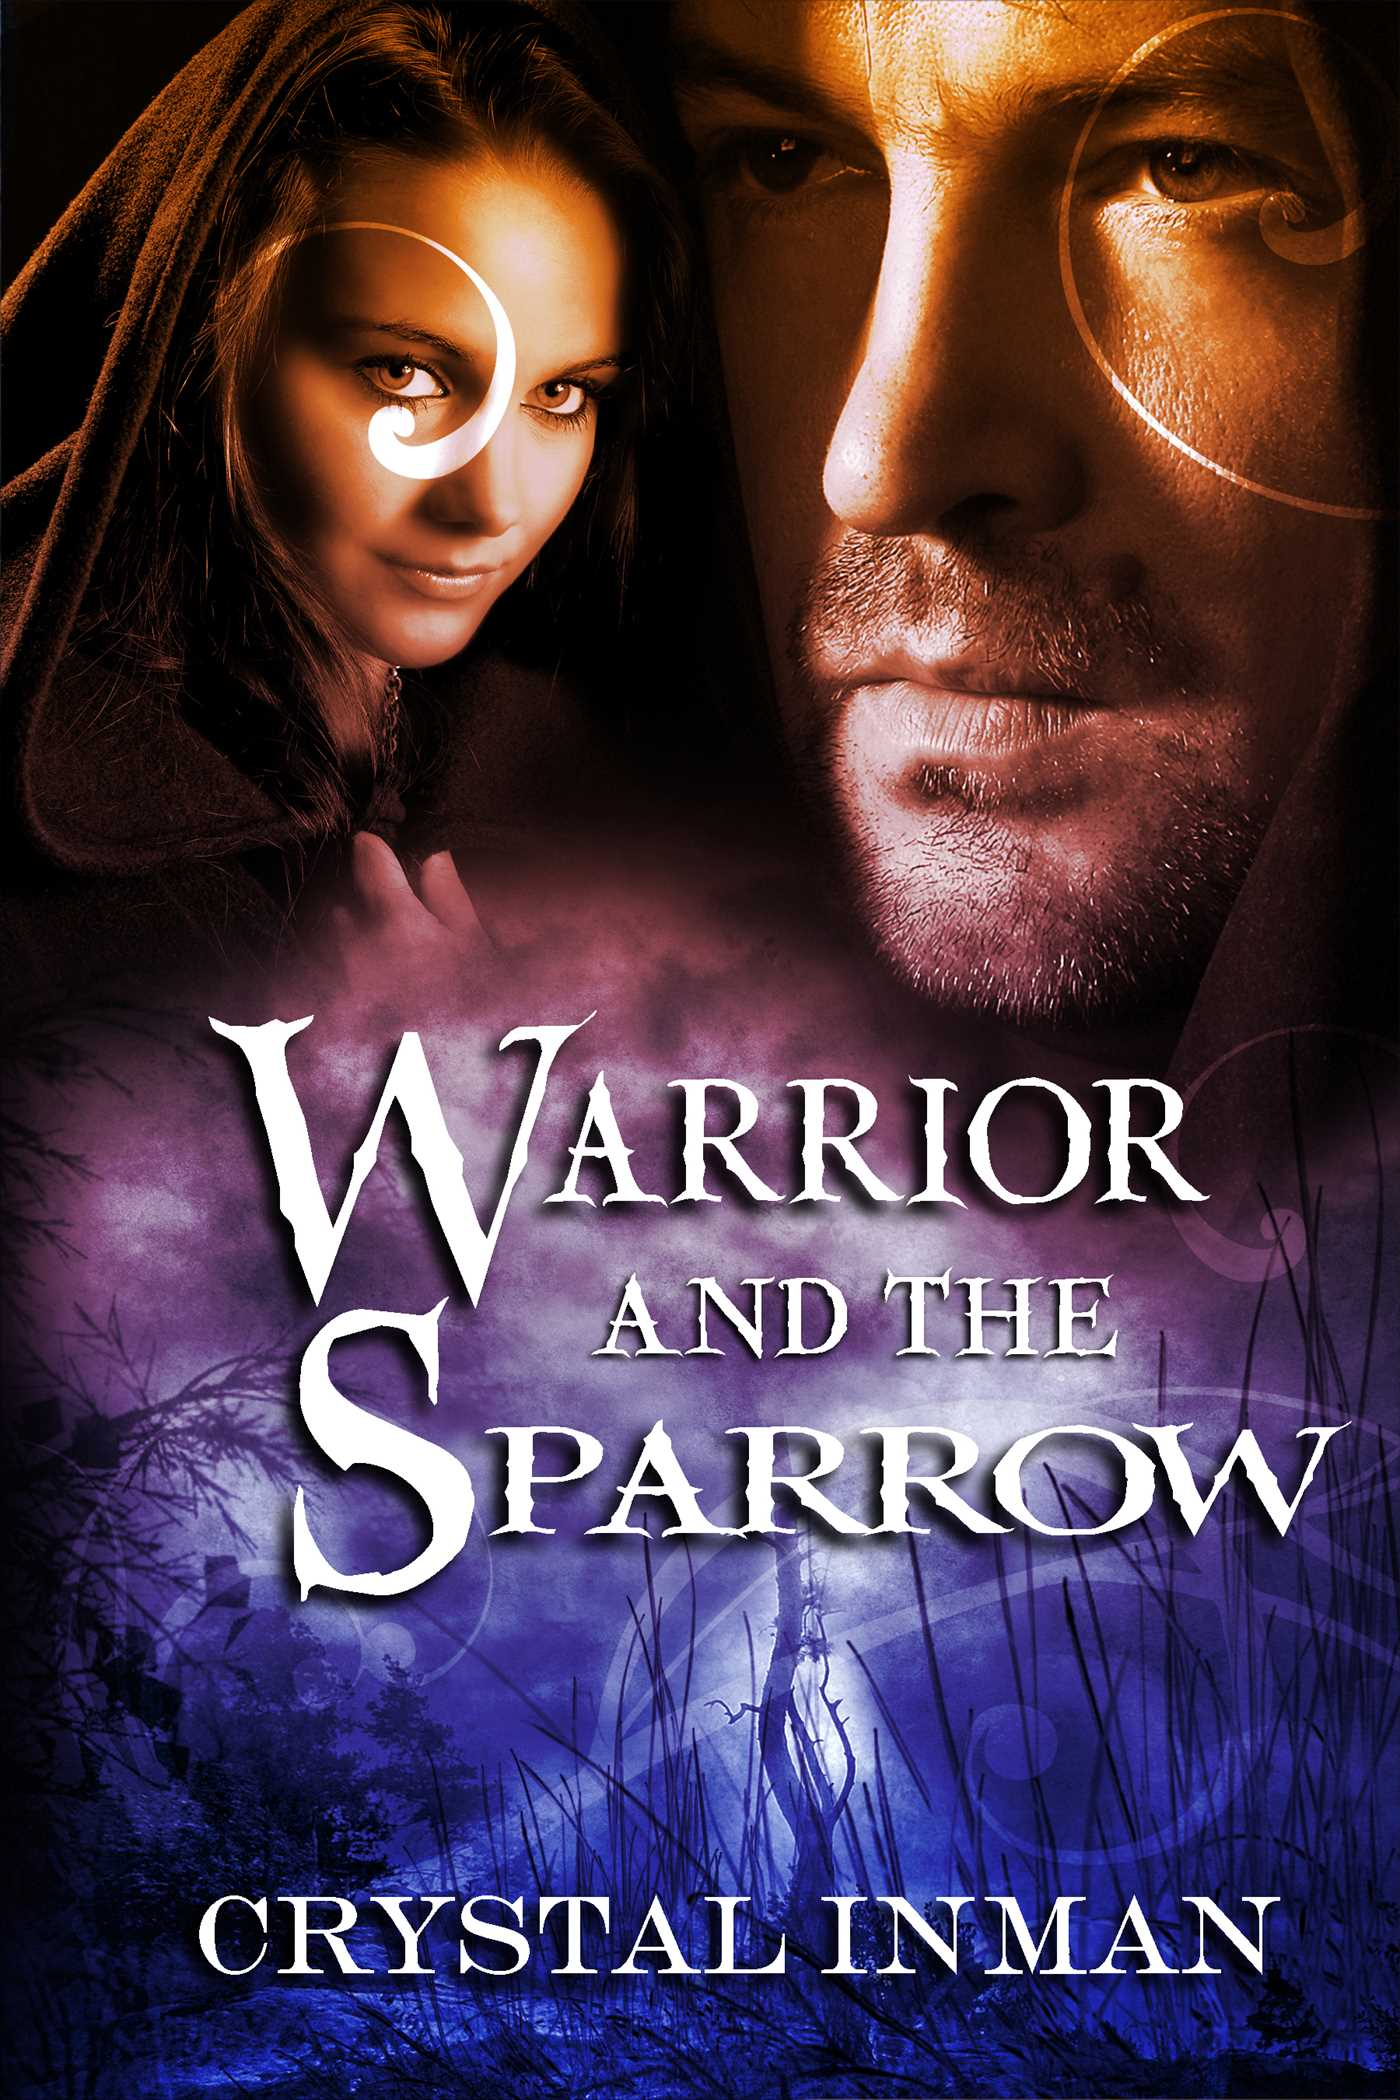 Warrior and the sparrow 9781611600070 hr